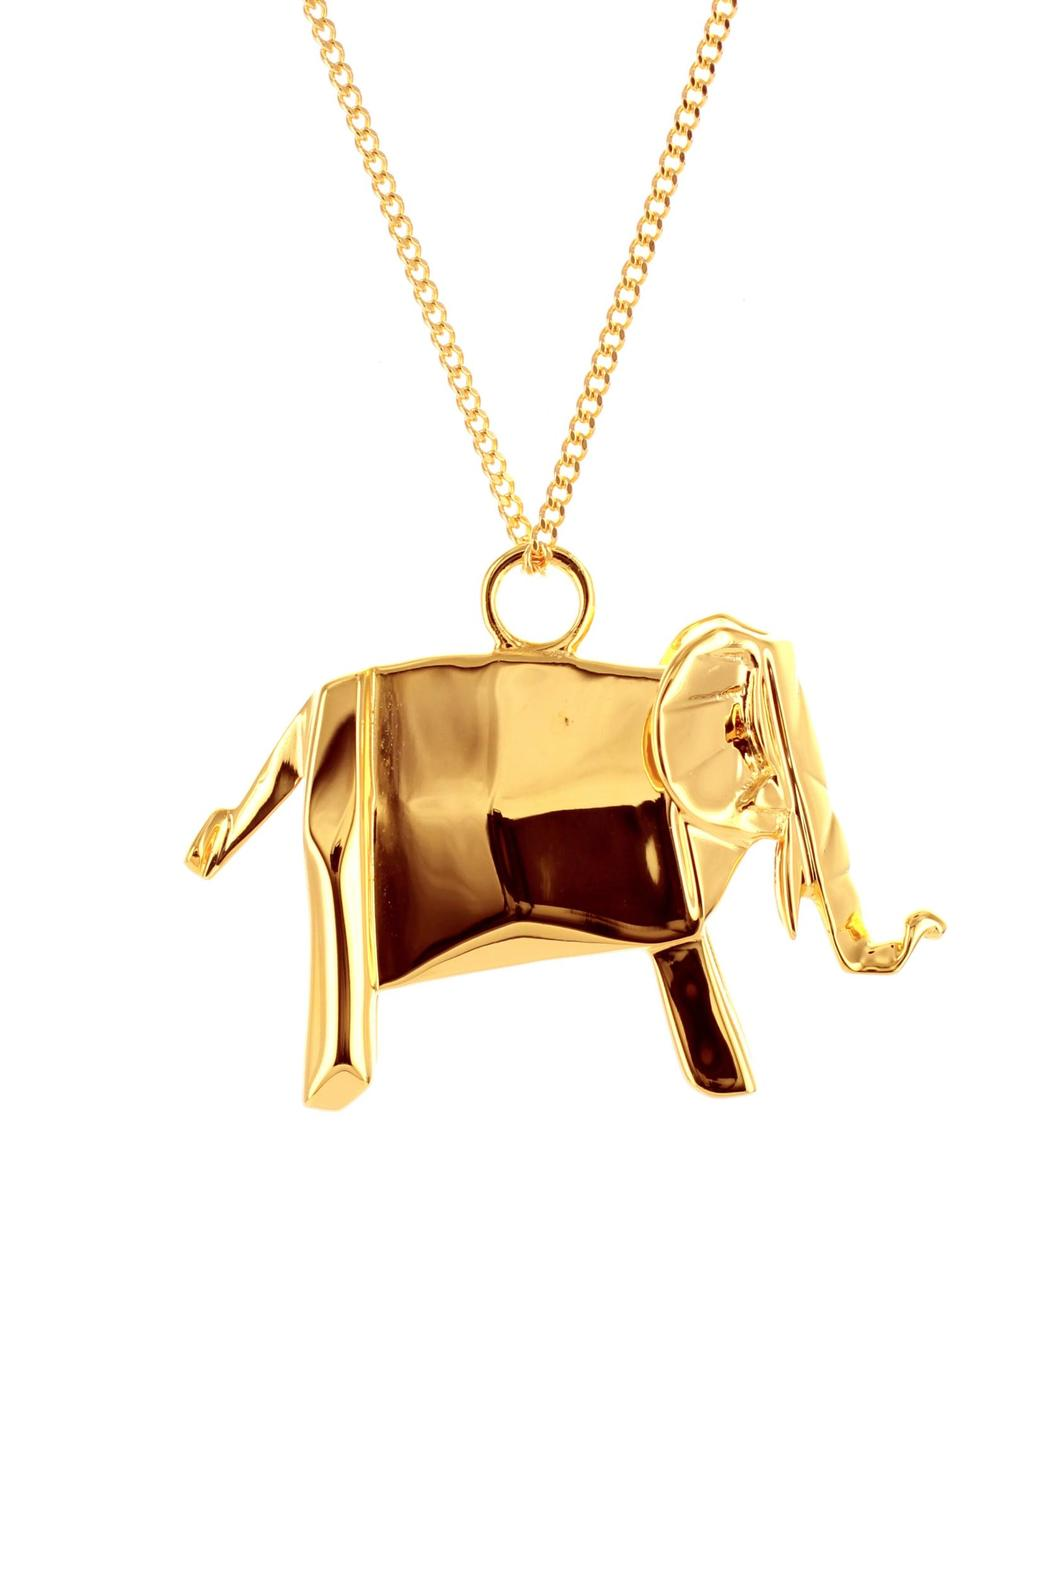 Origami Jewellery Necklace Elephant Silver from Paris by ... - photo#42